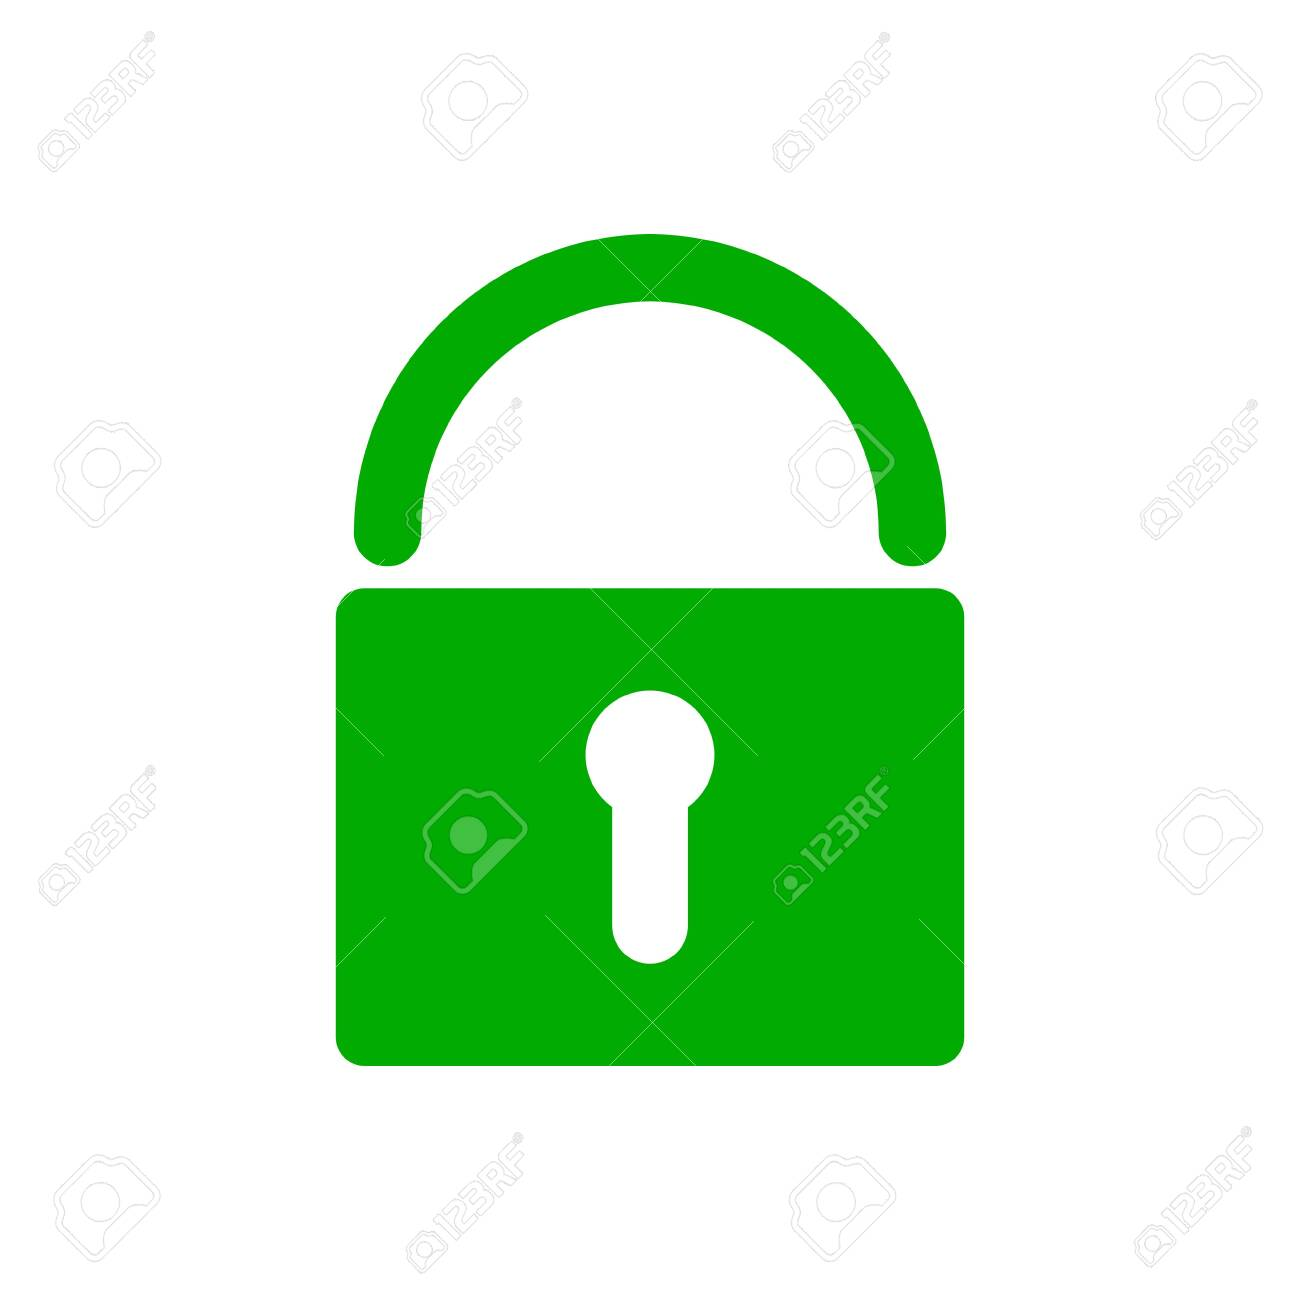 Lock and background - 129905416